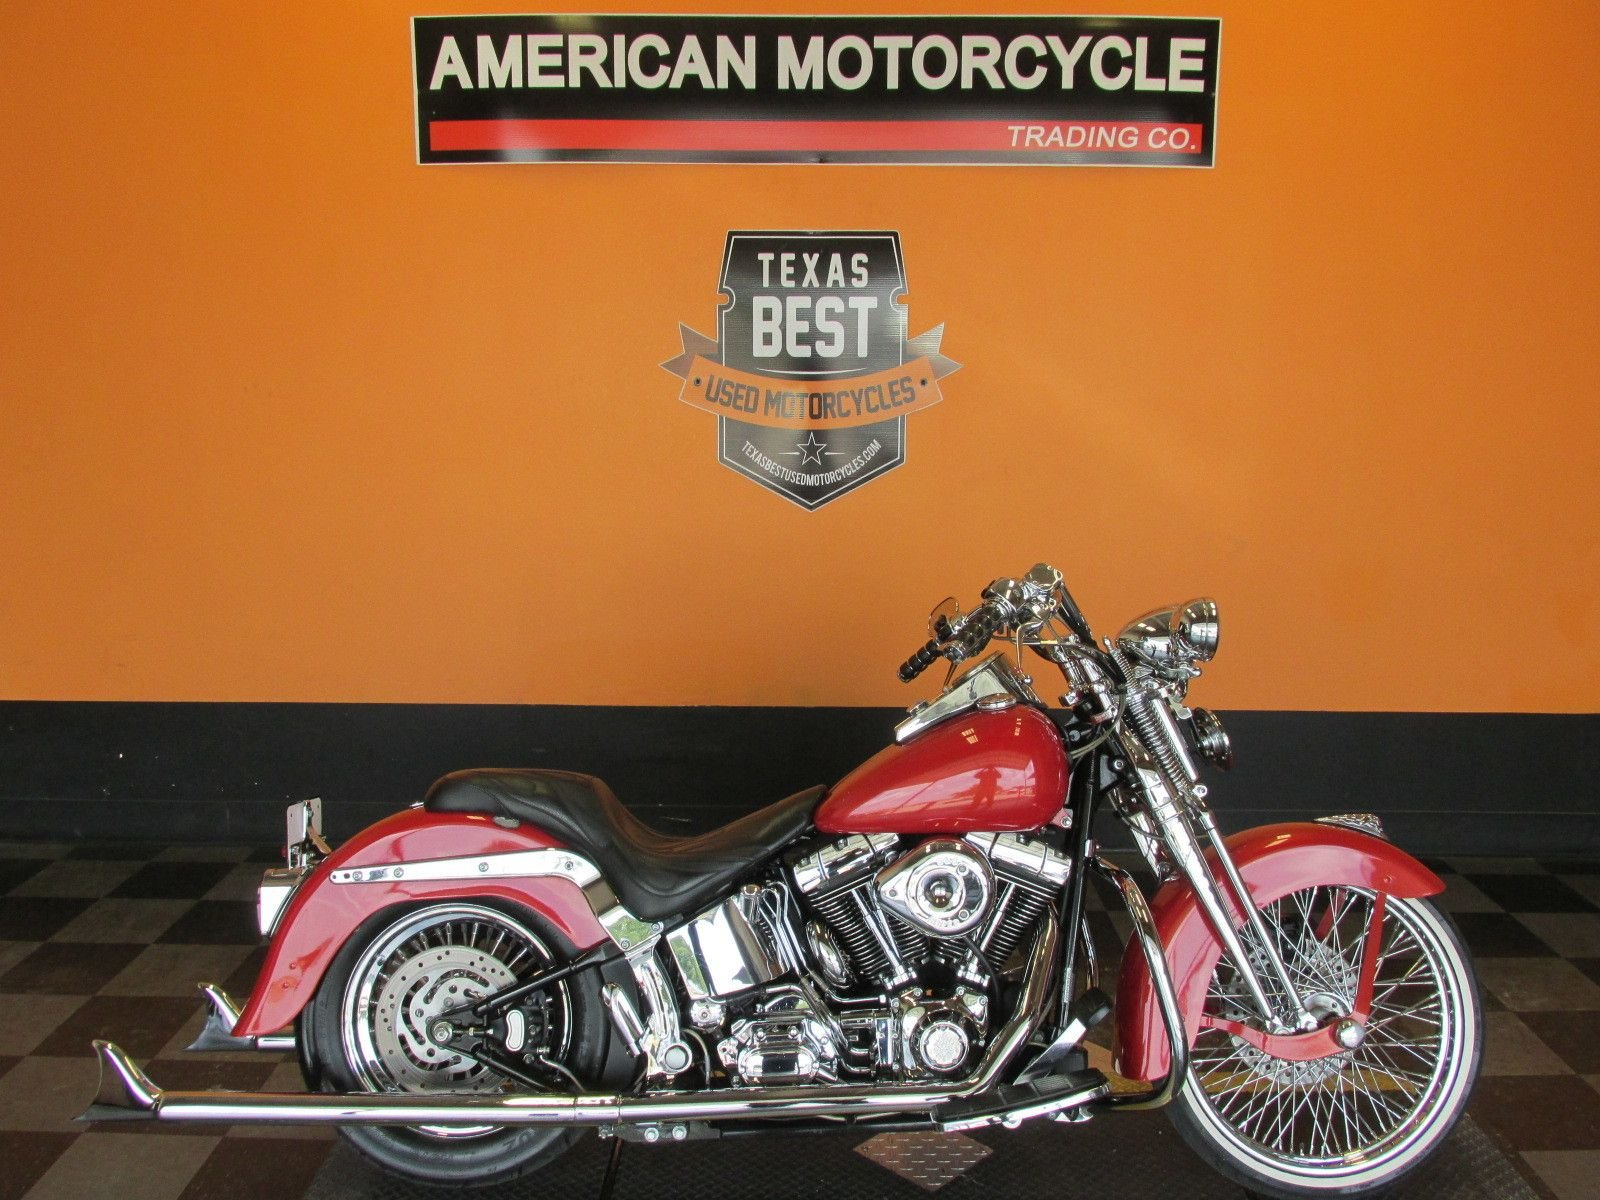 For Sale 2002 Harley-Davidson Softail Heritage Springer